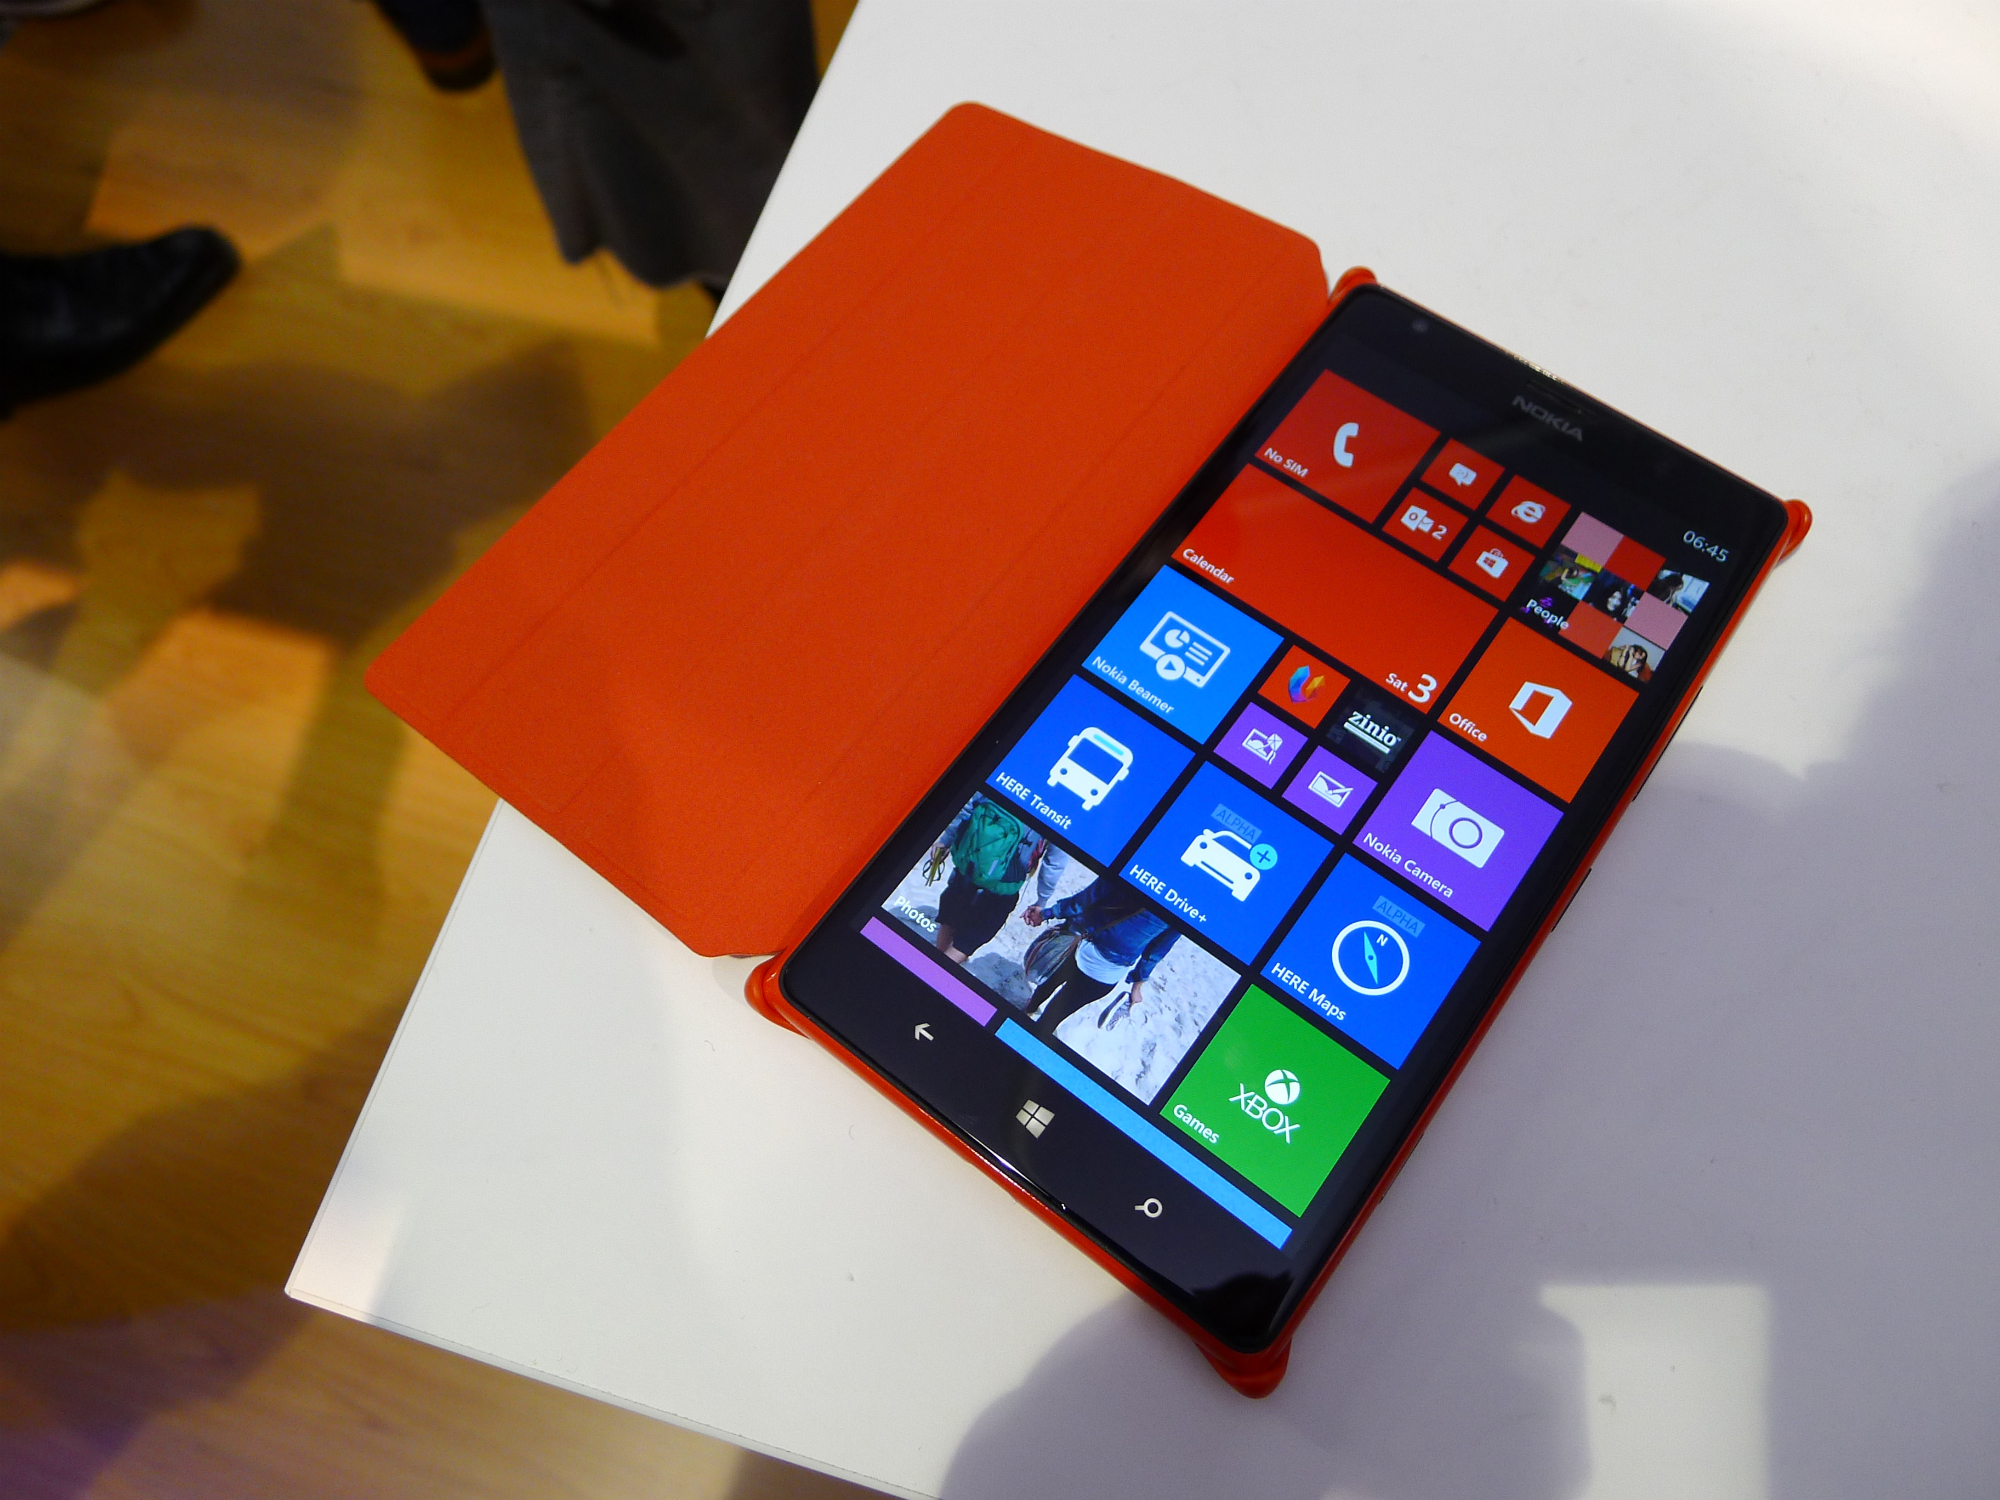 Nokia Lumia 1520 hands-on: This colossal 6″, 1080p quad-core smartphone is  sizing up the Galaxy Note 3